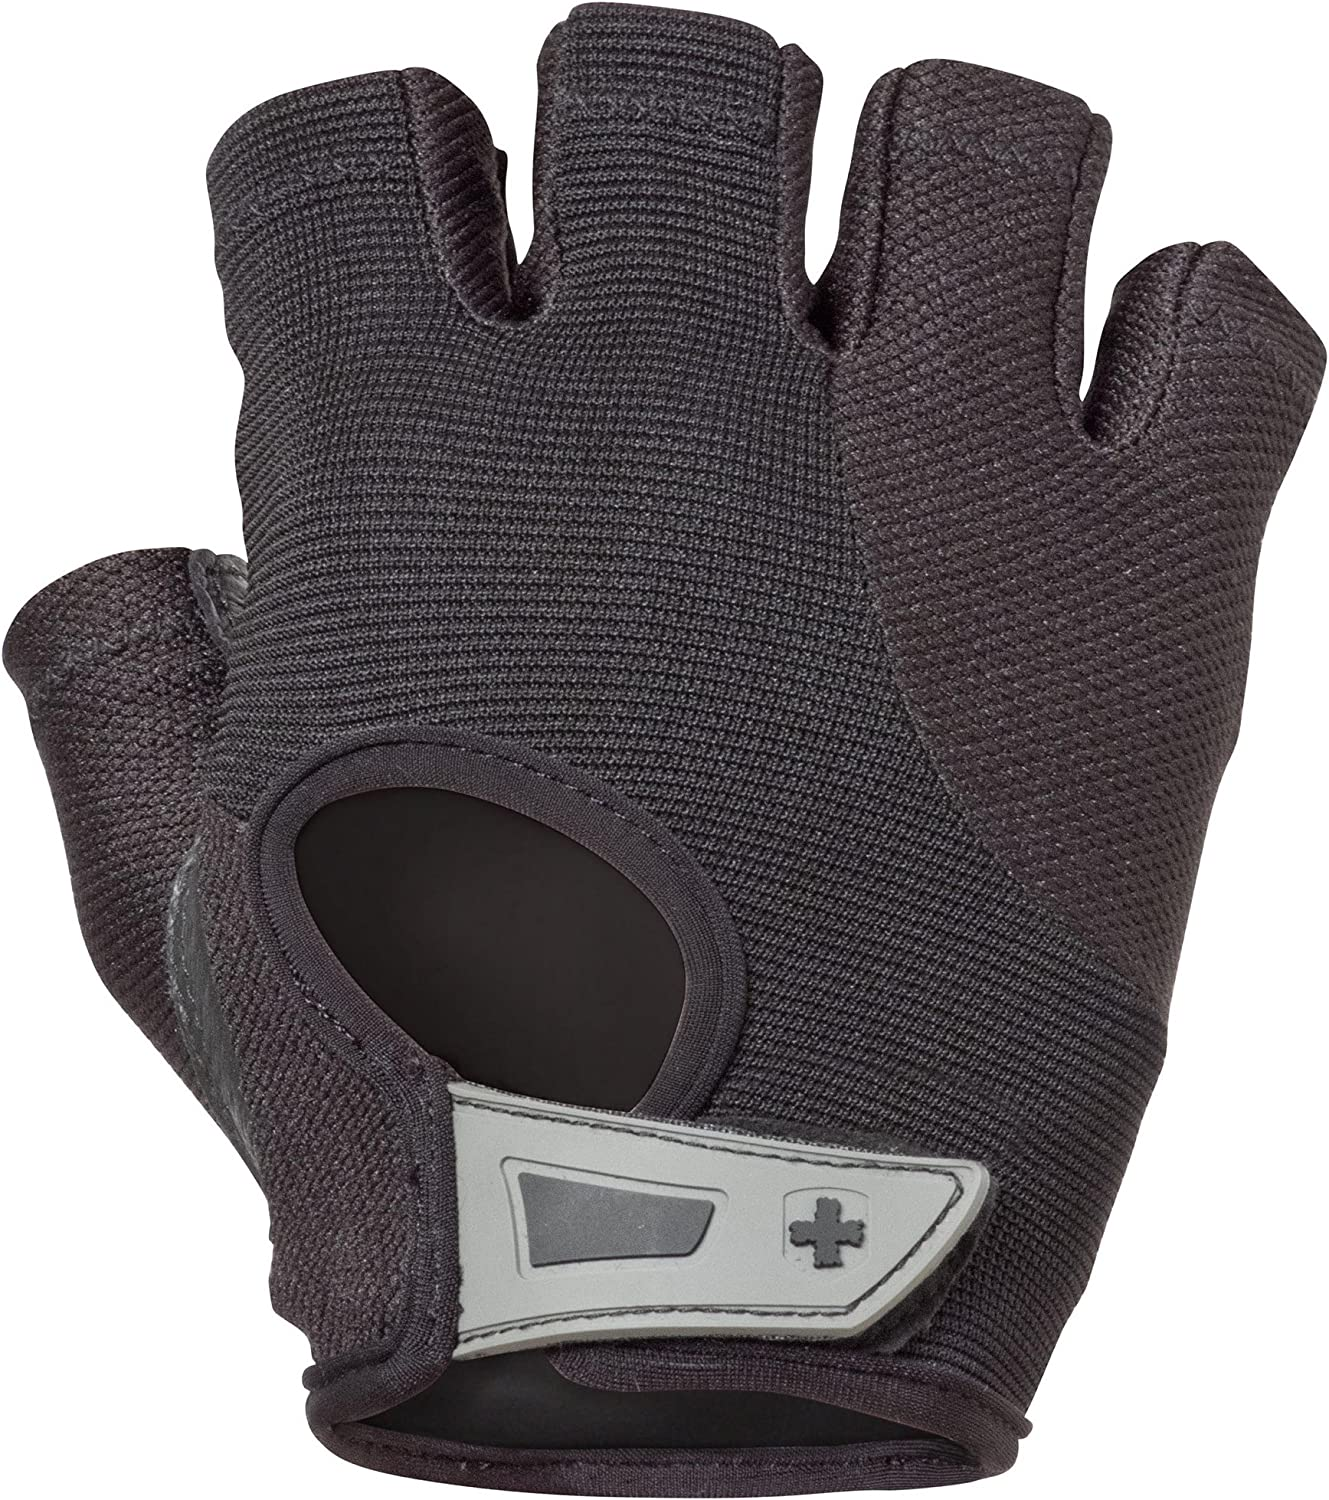 Harbinger Women/'s Power Weightlifting Gloves with StretchBack Mesh and Leather